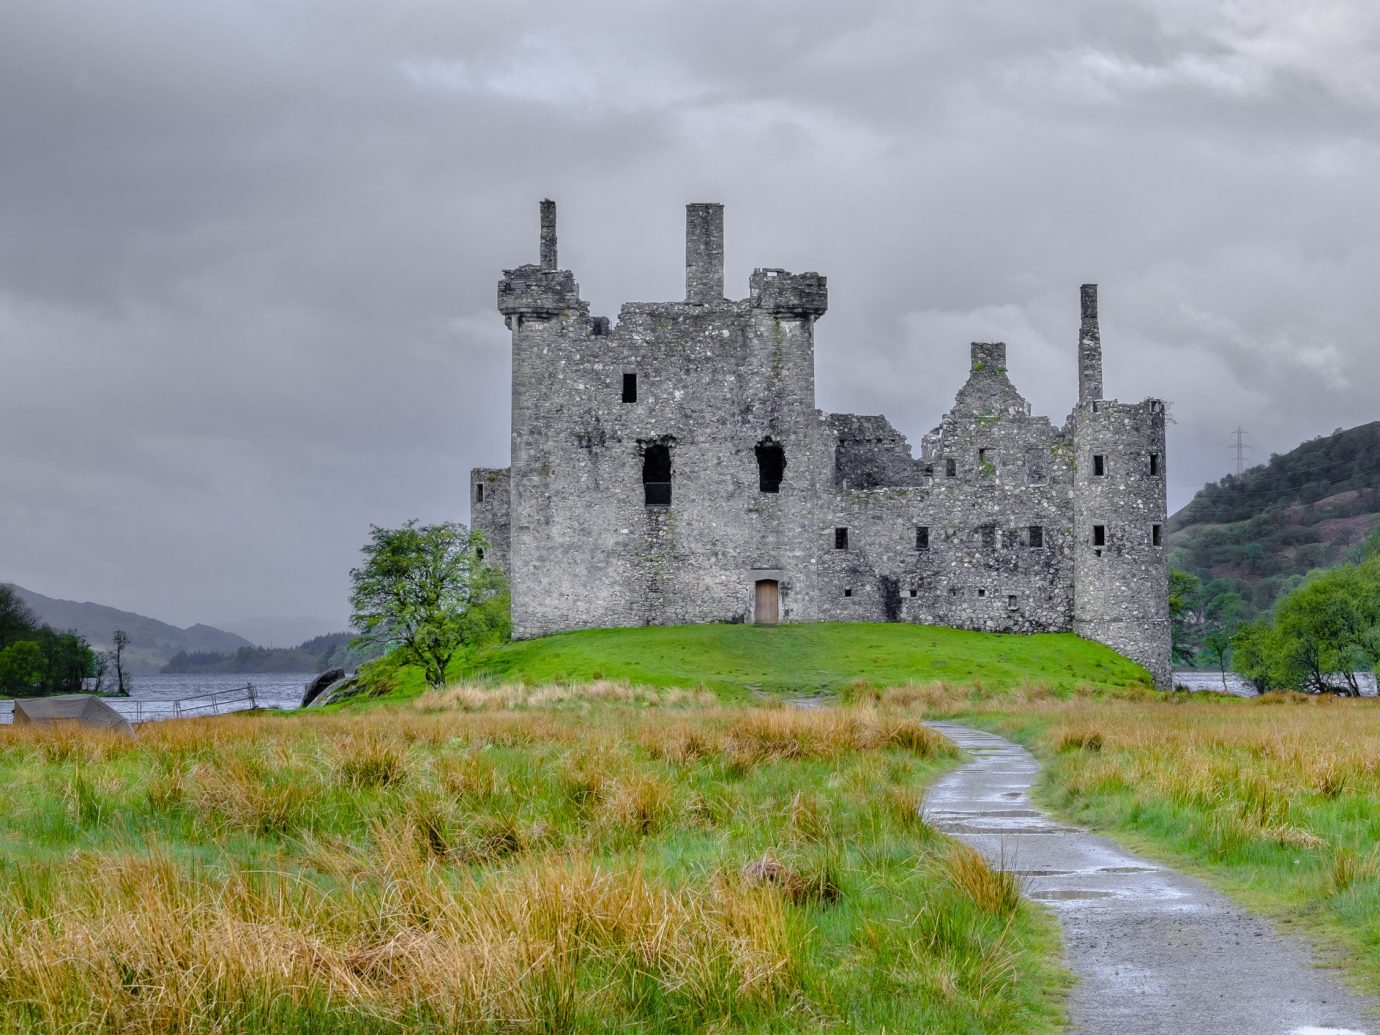 Landmarks Offbeat grass sky outdoor building castle green cloud highland Ruins fortification château tree medieval architecture grassy historic site history stone bastion